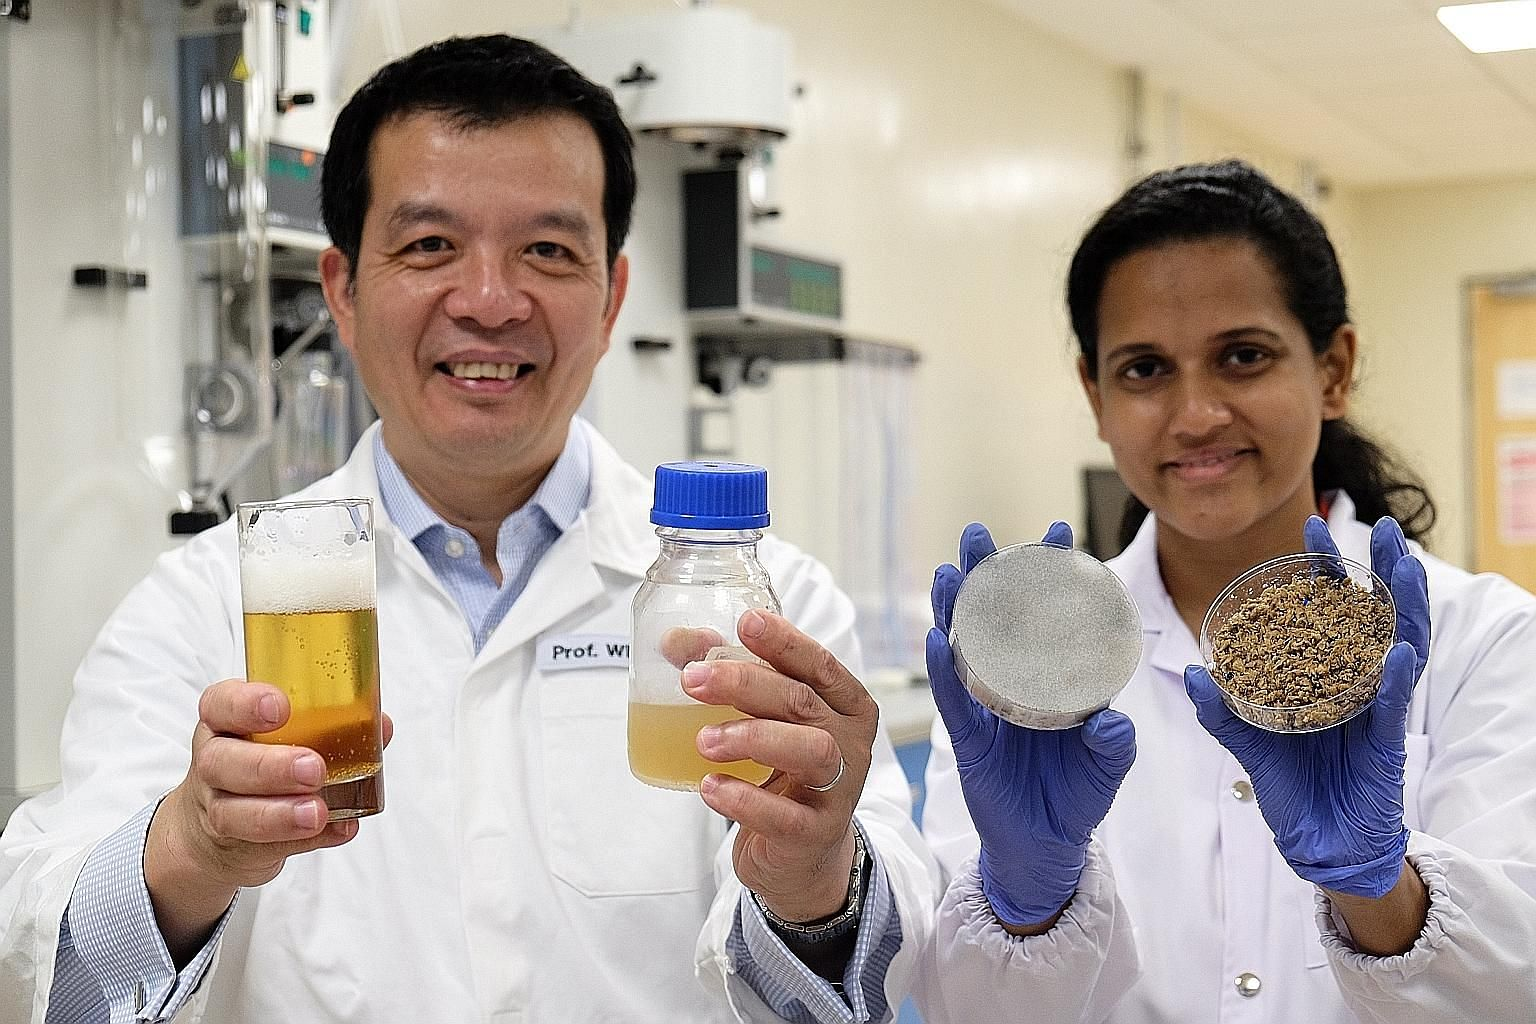 Prof William Chen and PhD student Sachindra Cooray holding (from right) the brewer's spent beer grains, the fermented spent beer grains, the liquid nutrient used to grow yeast, and beer.